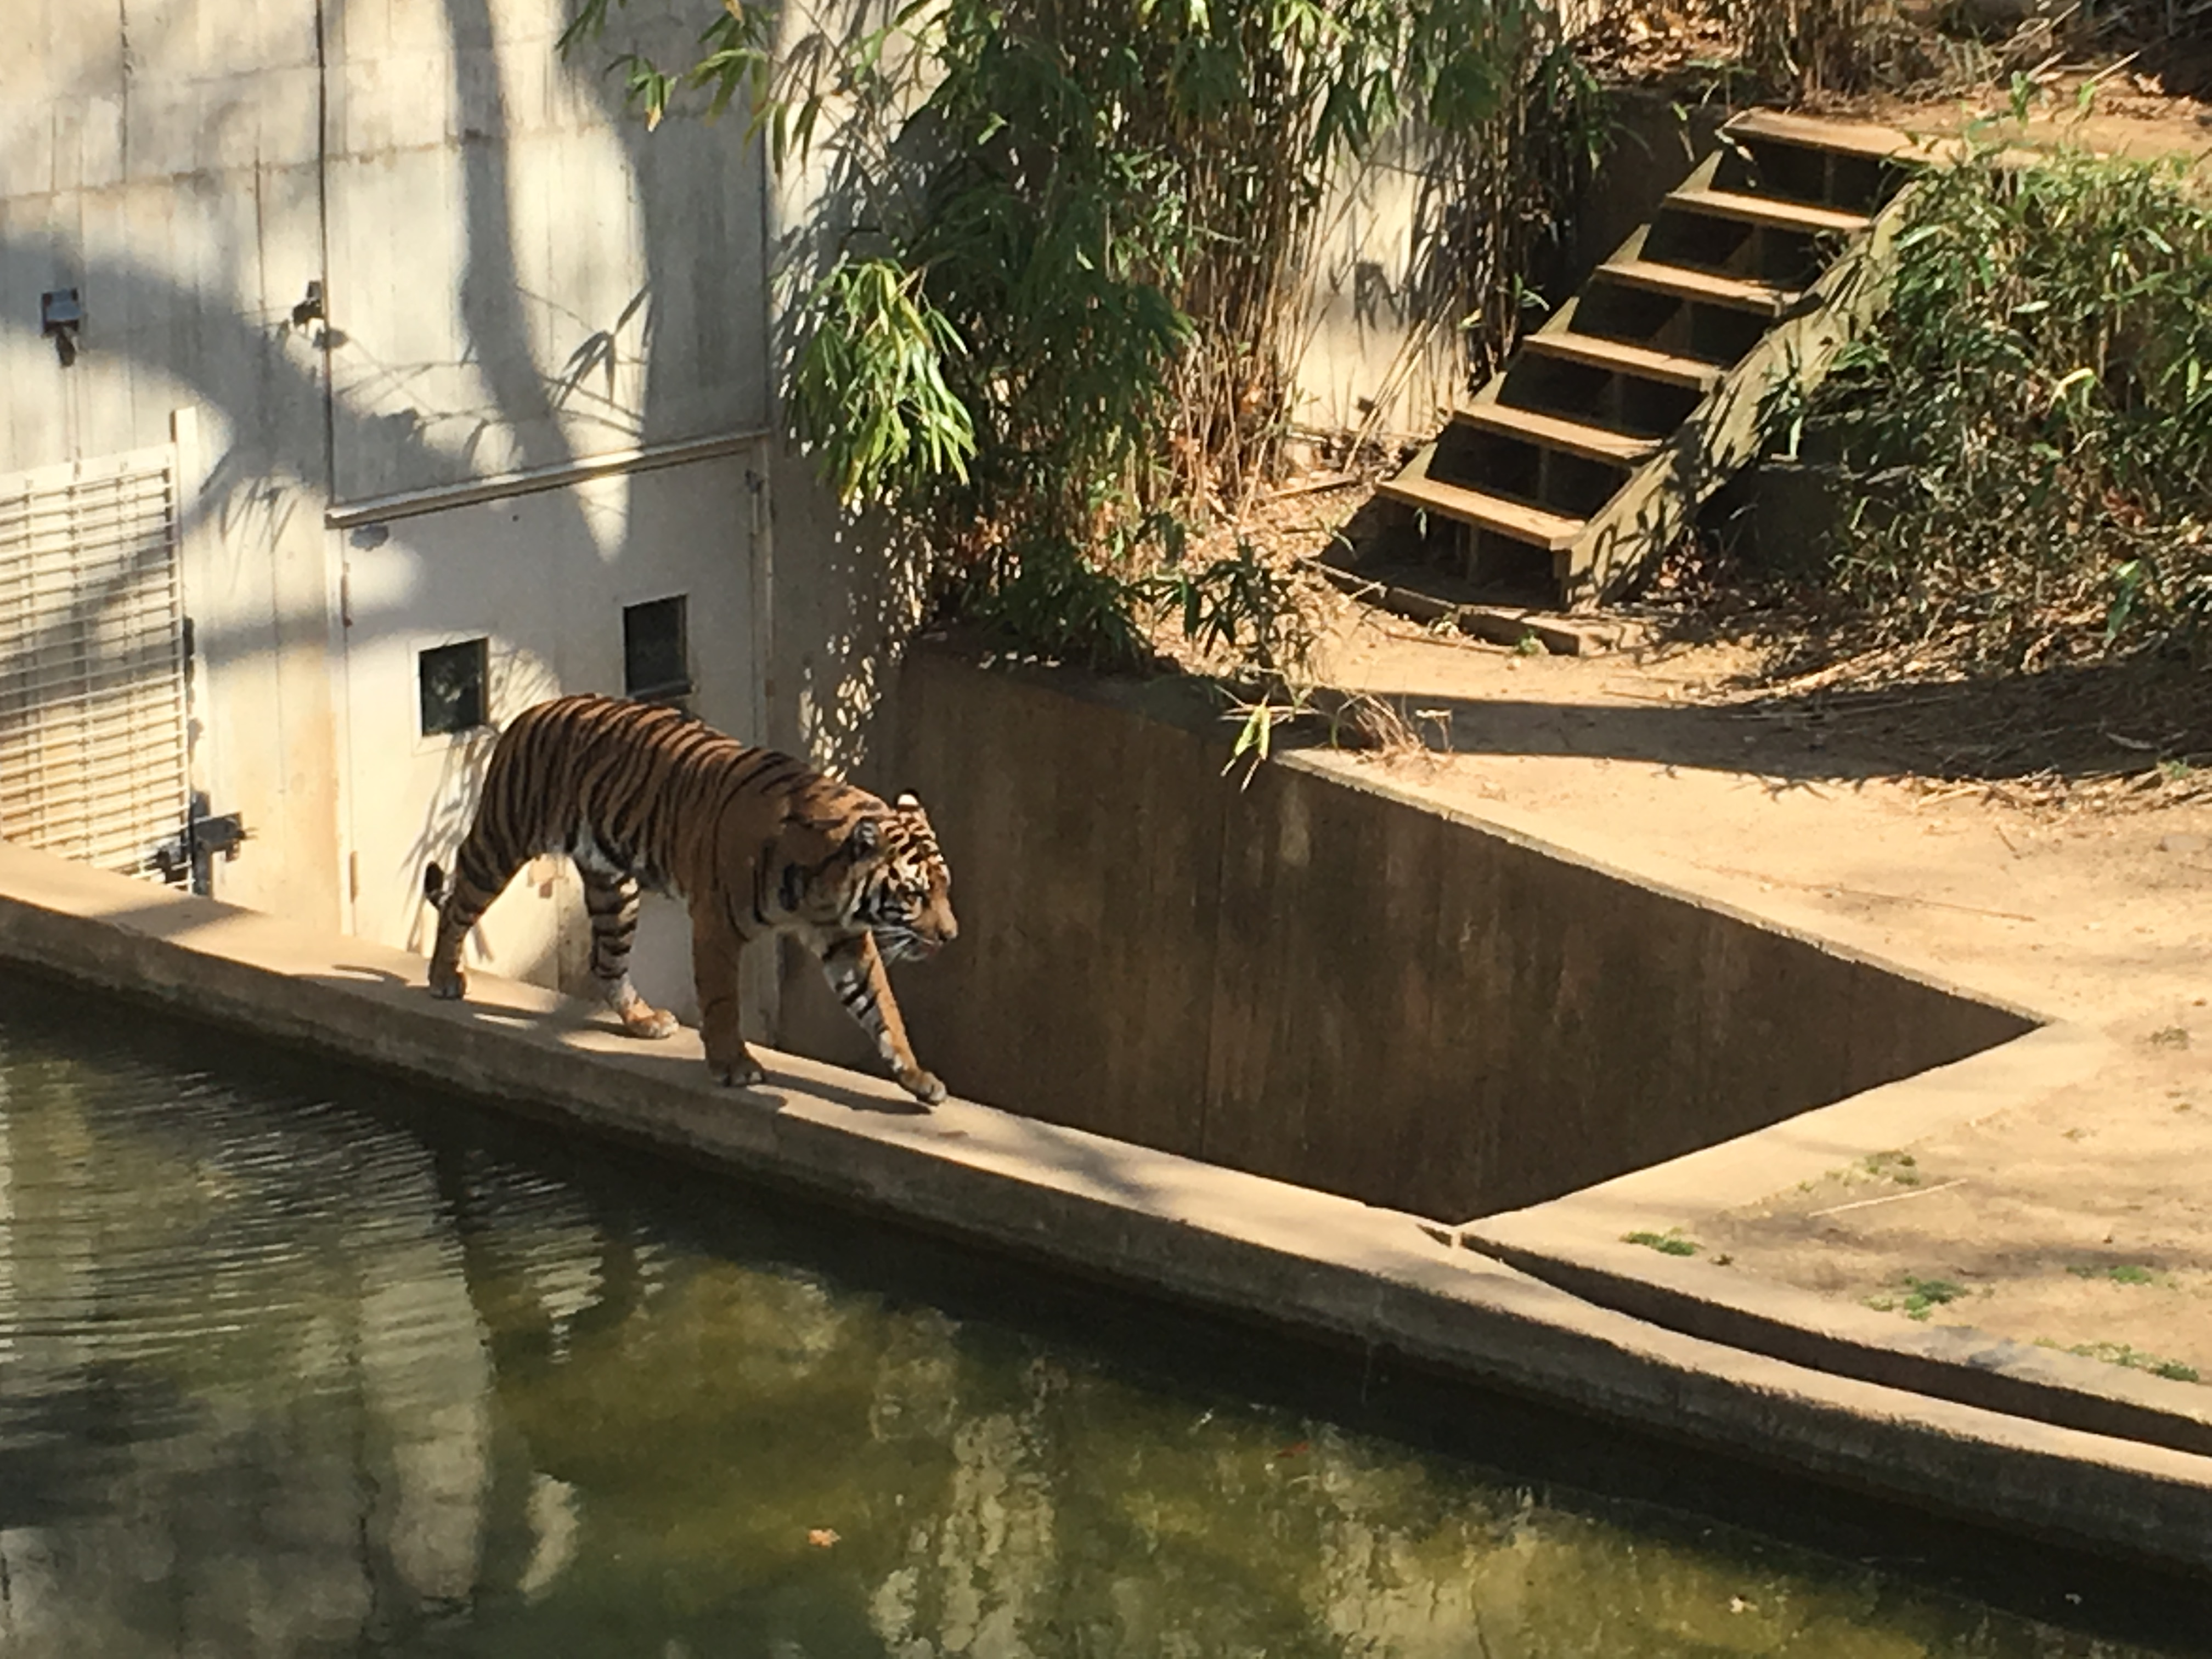 Staycation in Washington, D.C. - Smithsonian's National Zoo